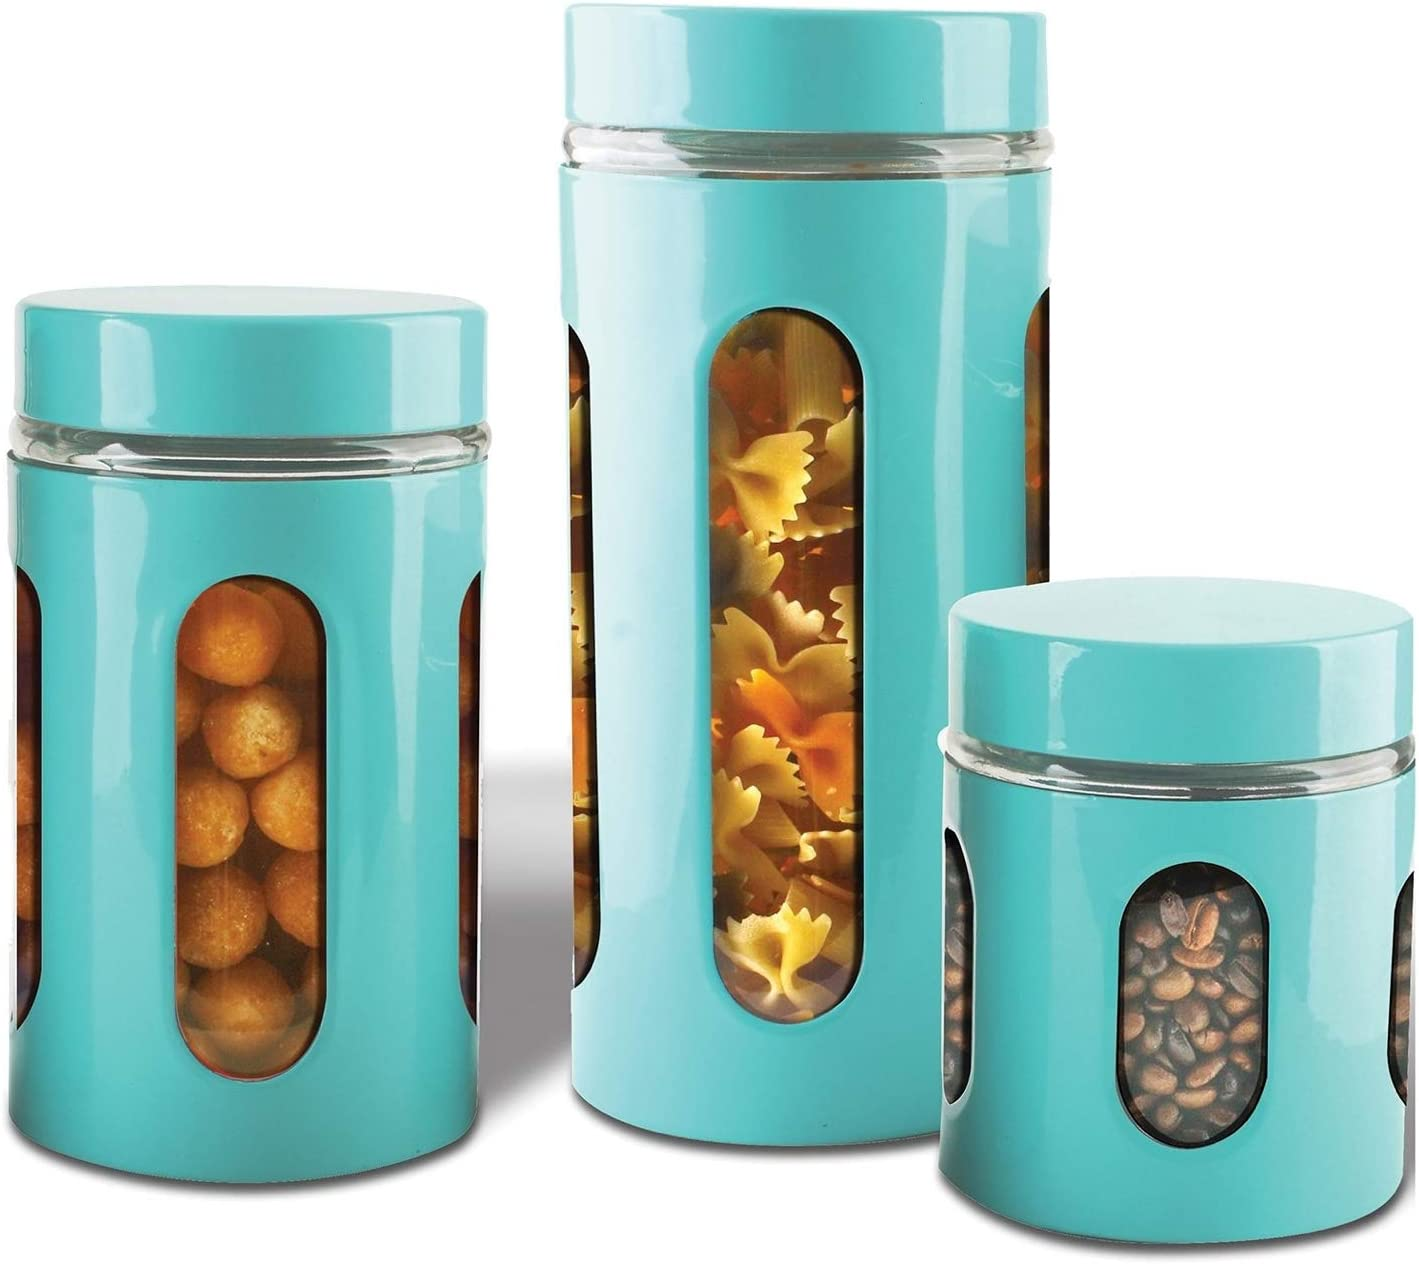 AIR-TIGHT KITCHEN CANISTER SET By Premius, 3-Piece Glass and Metal Canisters, Quick Access And Space Saving, Great Safe And Fresh Food, Convenient Sizes, Modern Design (Turquoise Blue)